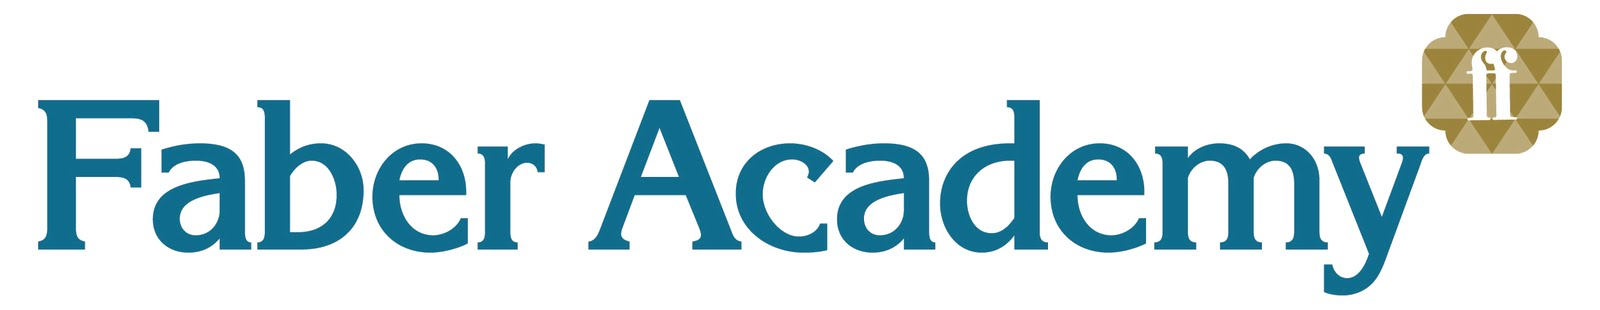 writing academy Sorry, but we are not accepting any new students at the moment in order to maintain very high standards of service, we limit the number of students who can join.